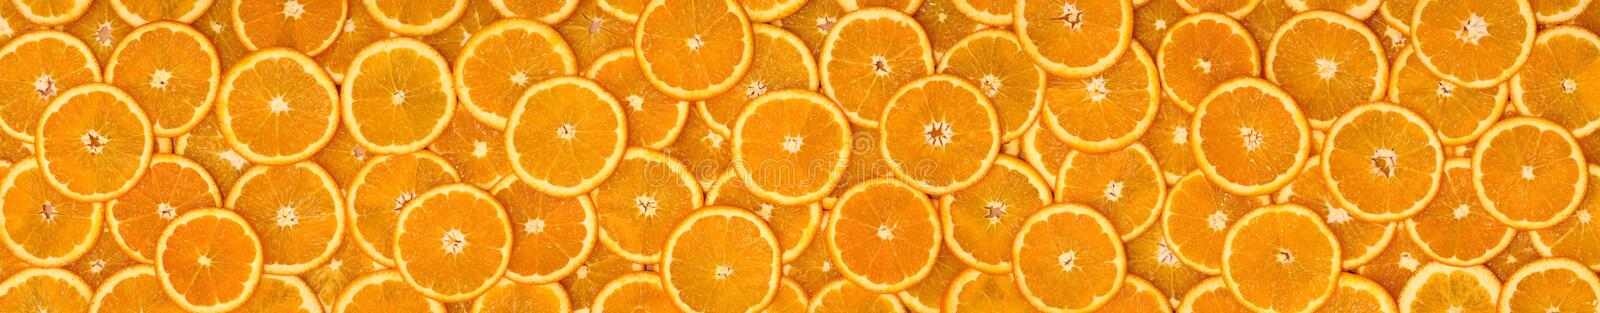 Oranges-panorama 2. Panorama comprised of multiple photos royalty free stock photography